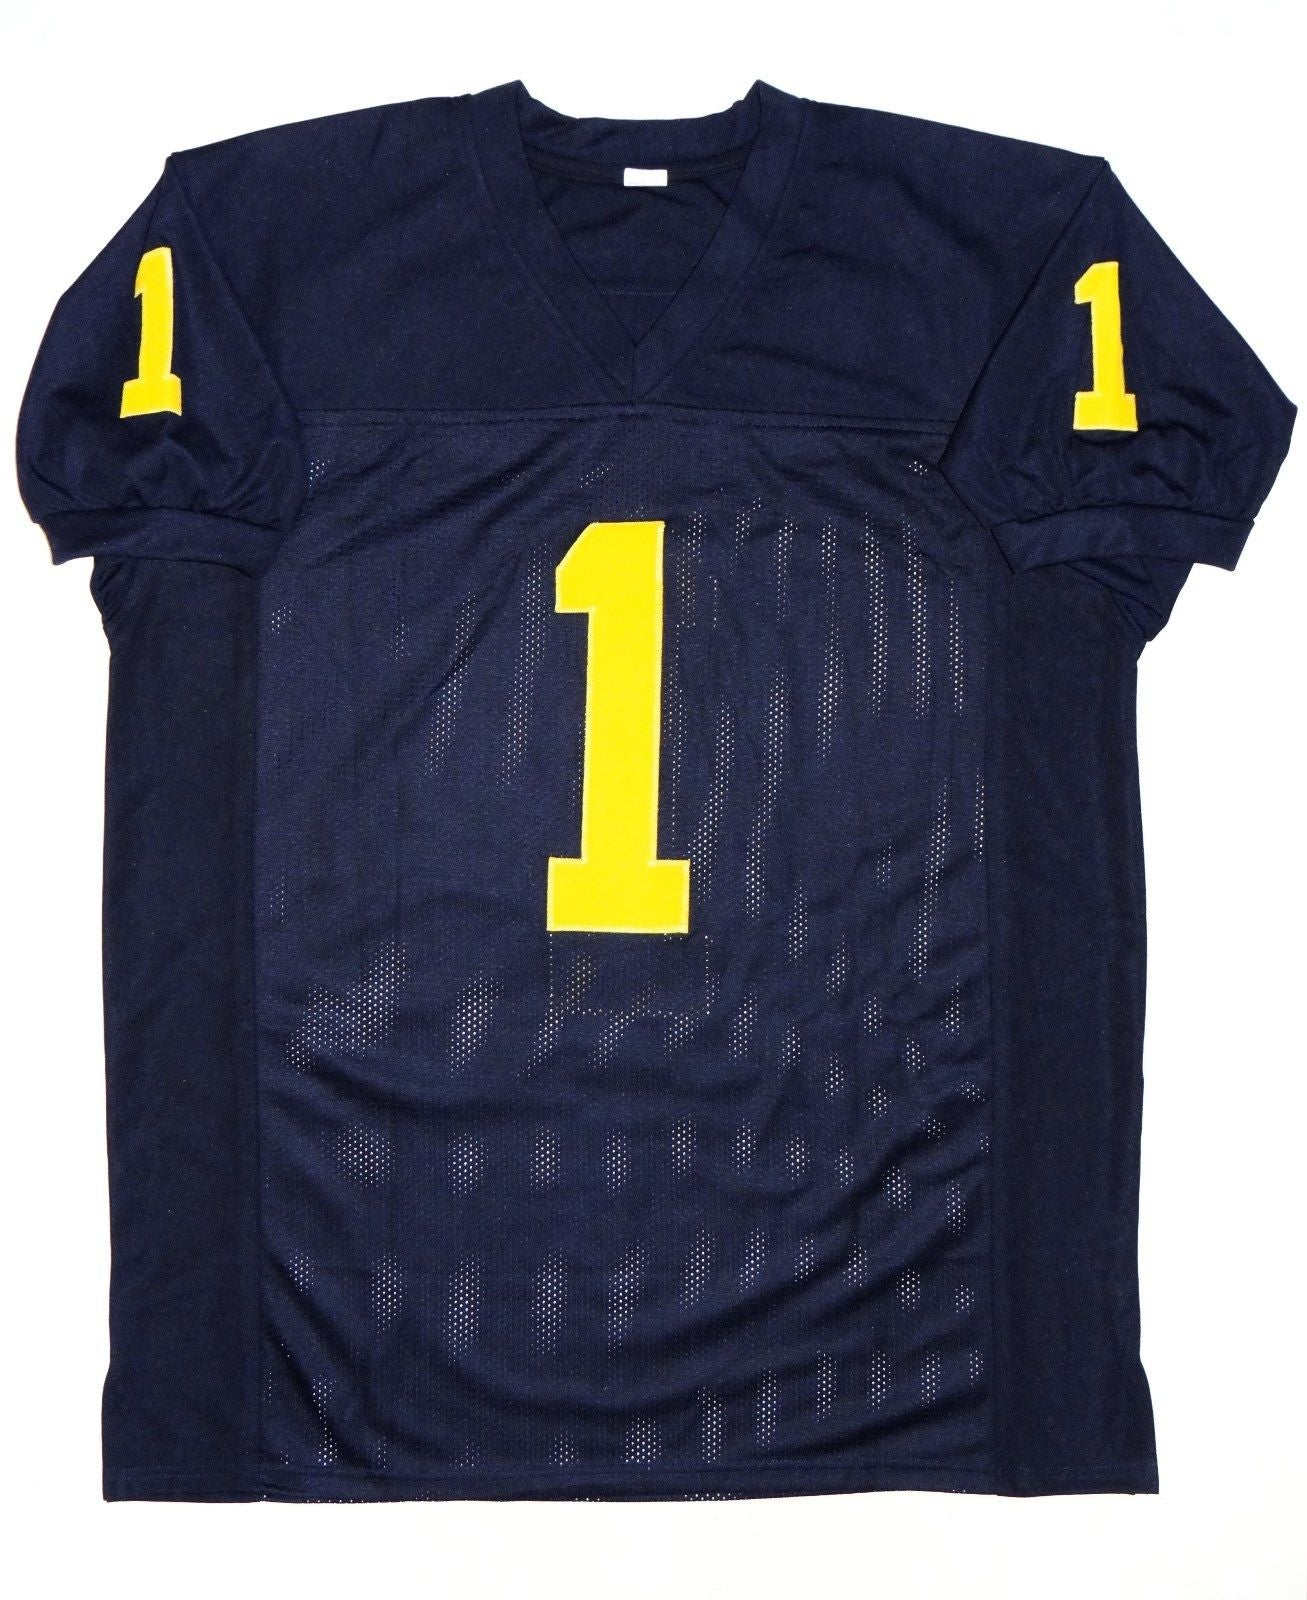 best sneakers 67735 bb391 Devin Funchess Autographed Navy Blue College Style Jersey ...